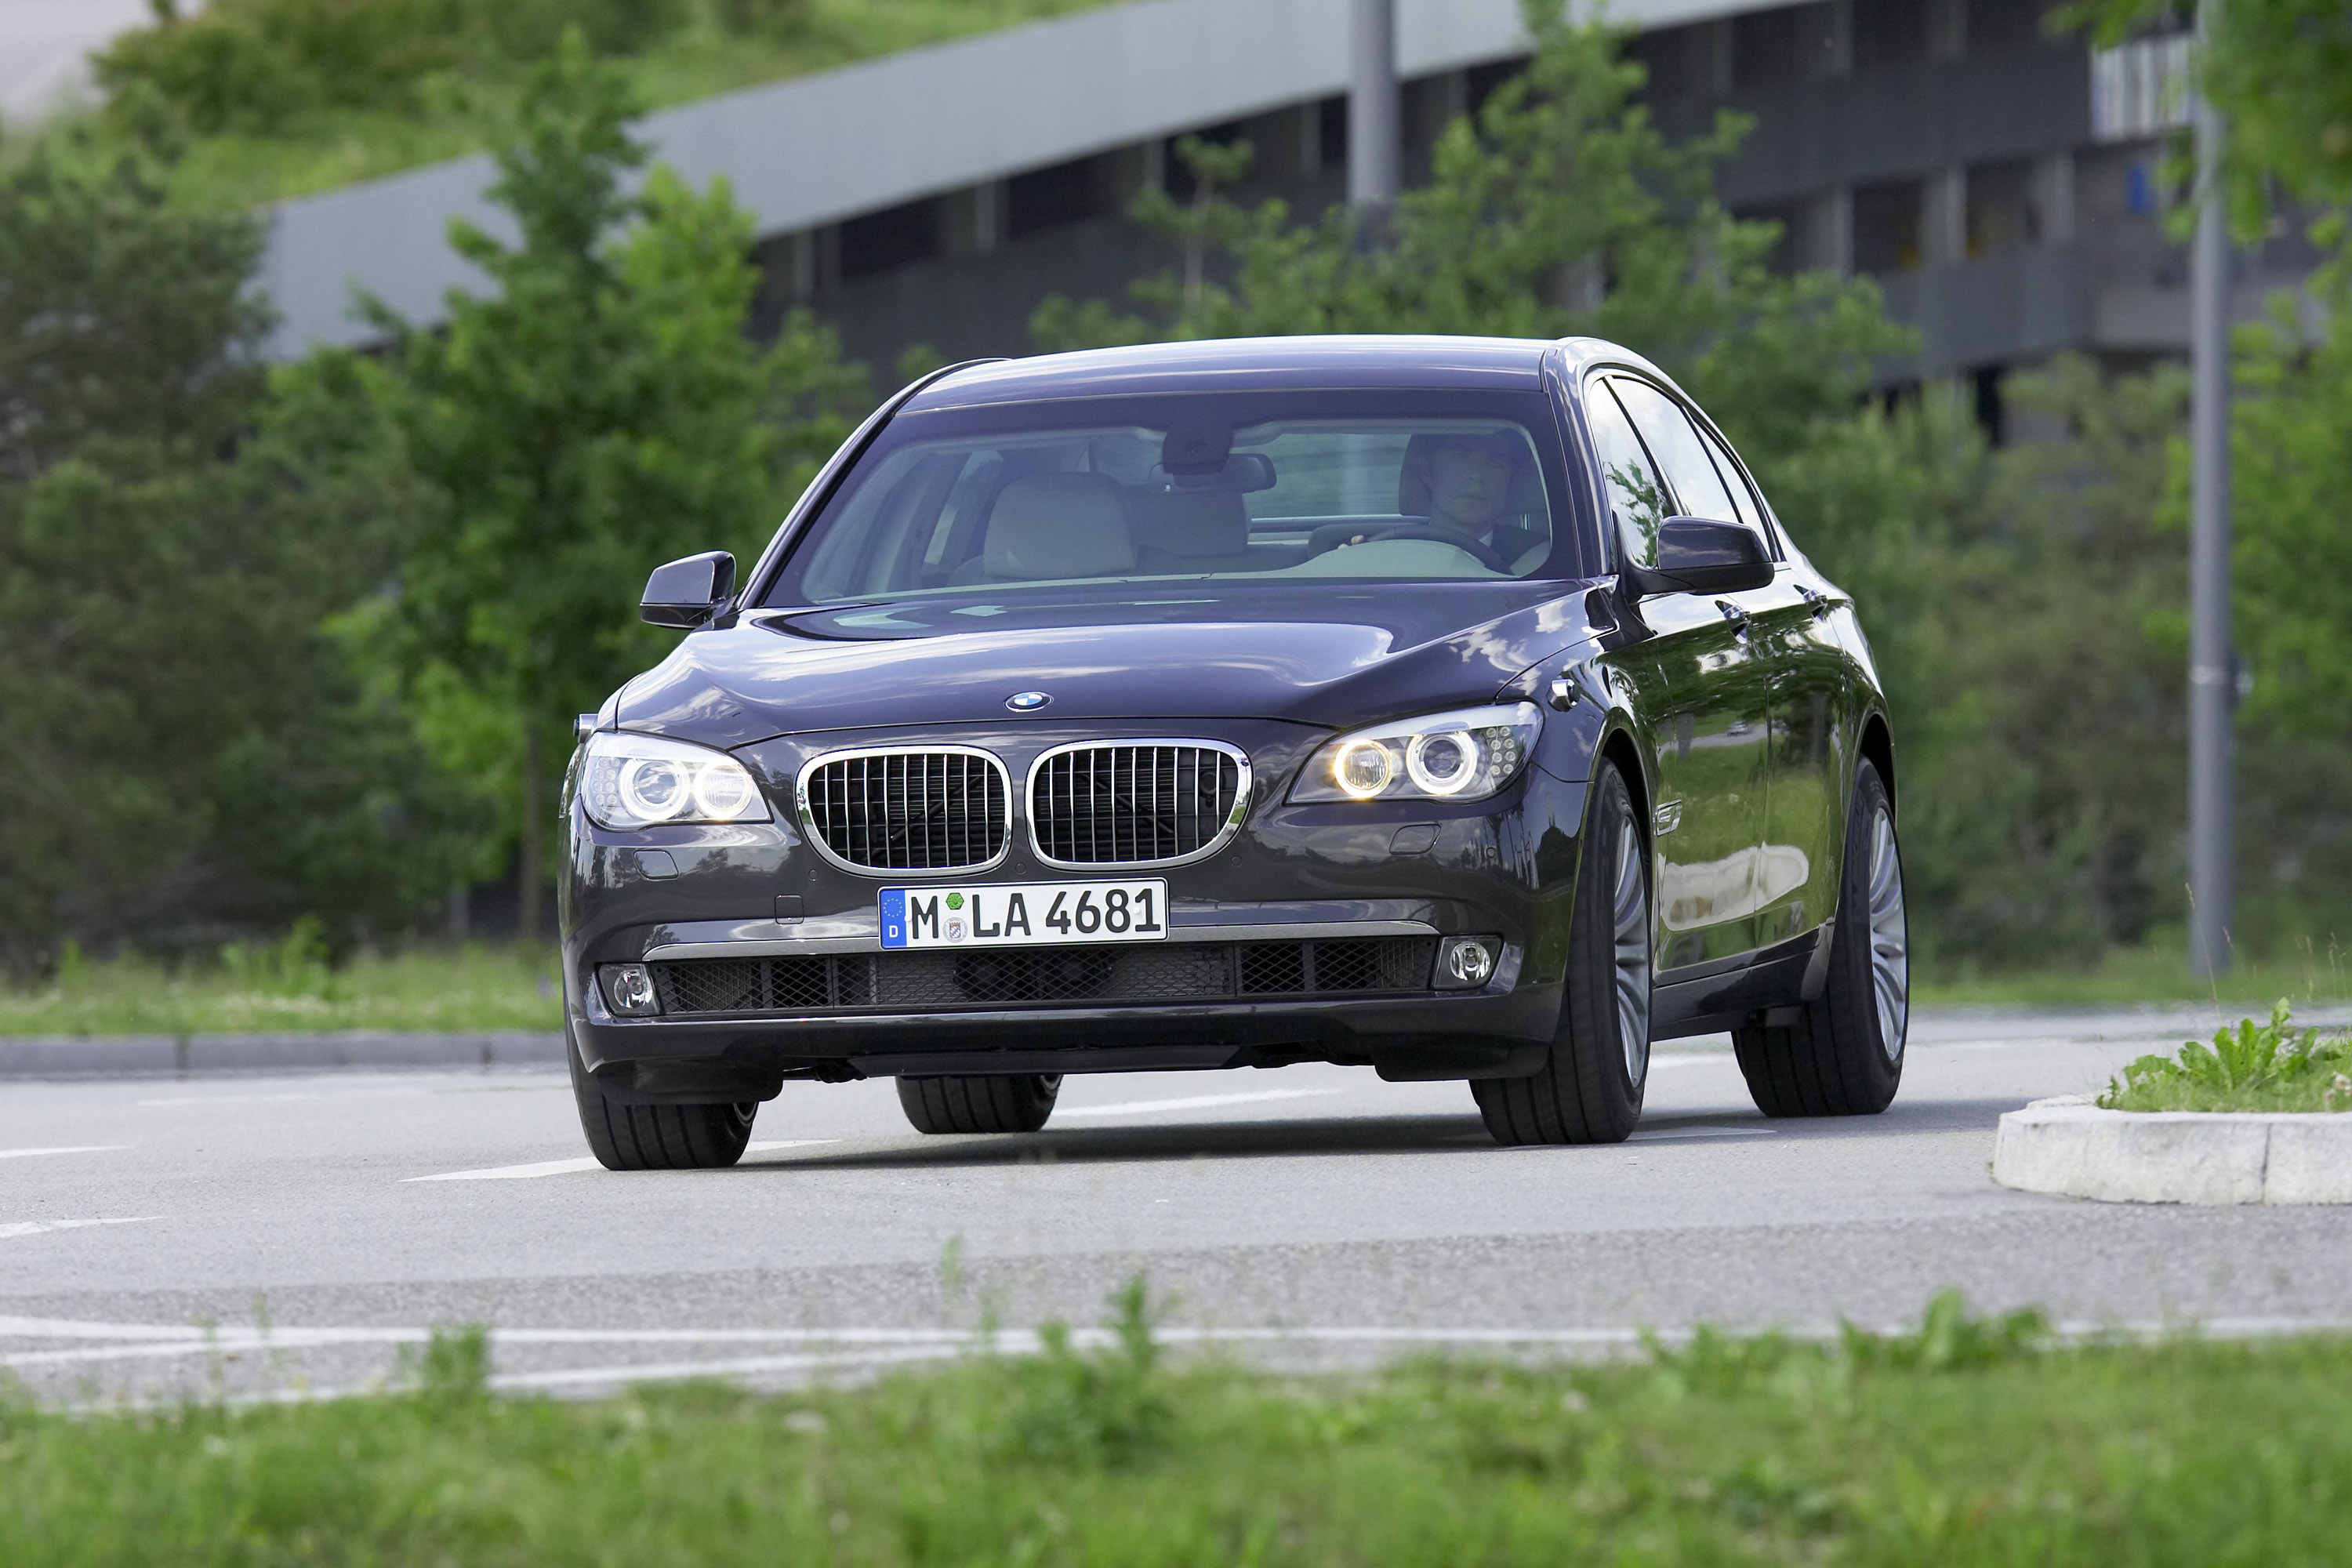 BMW 7 Series High Security - Picture 24017